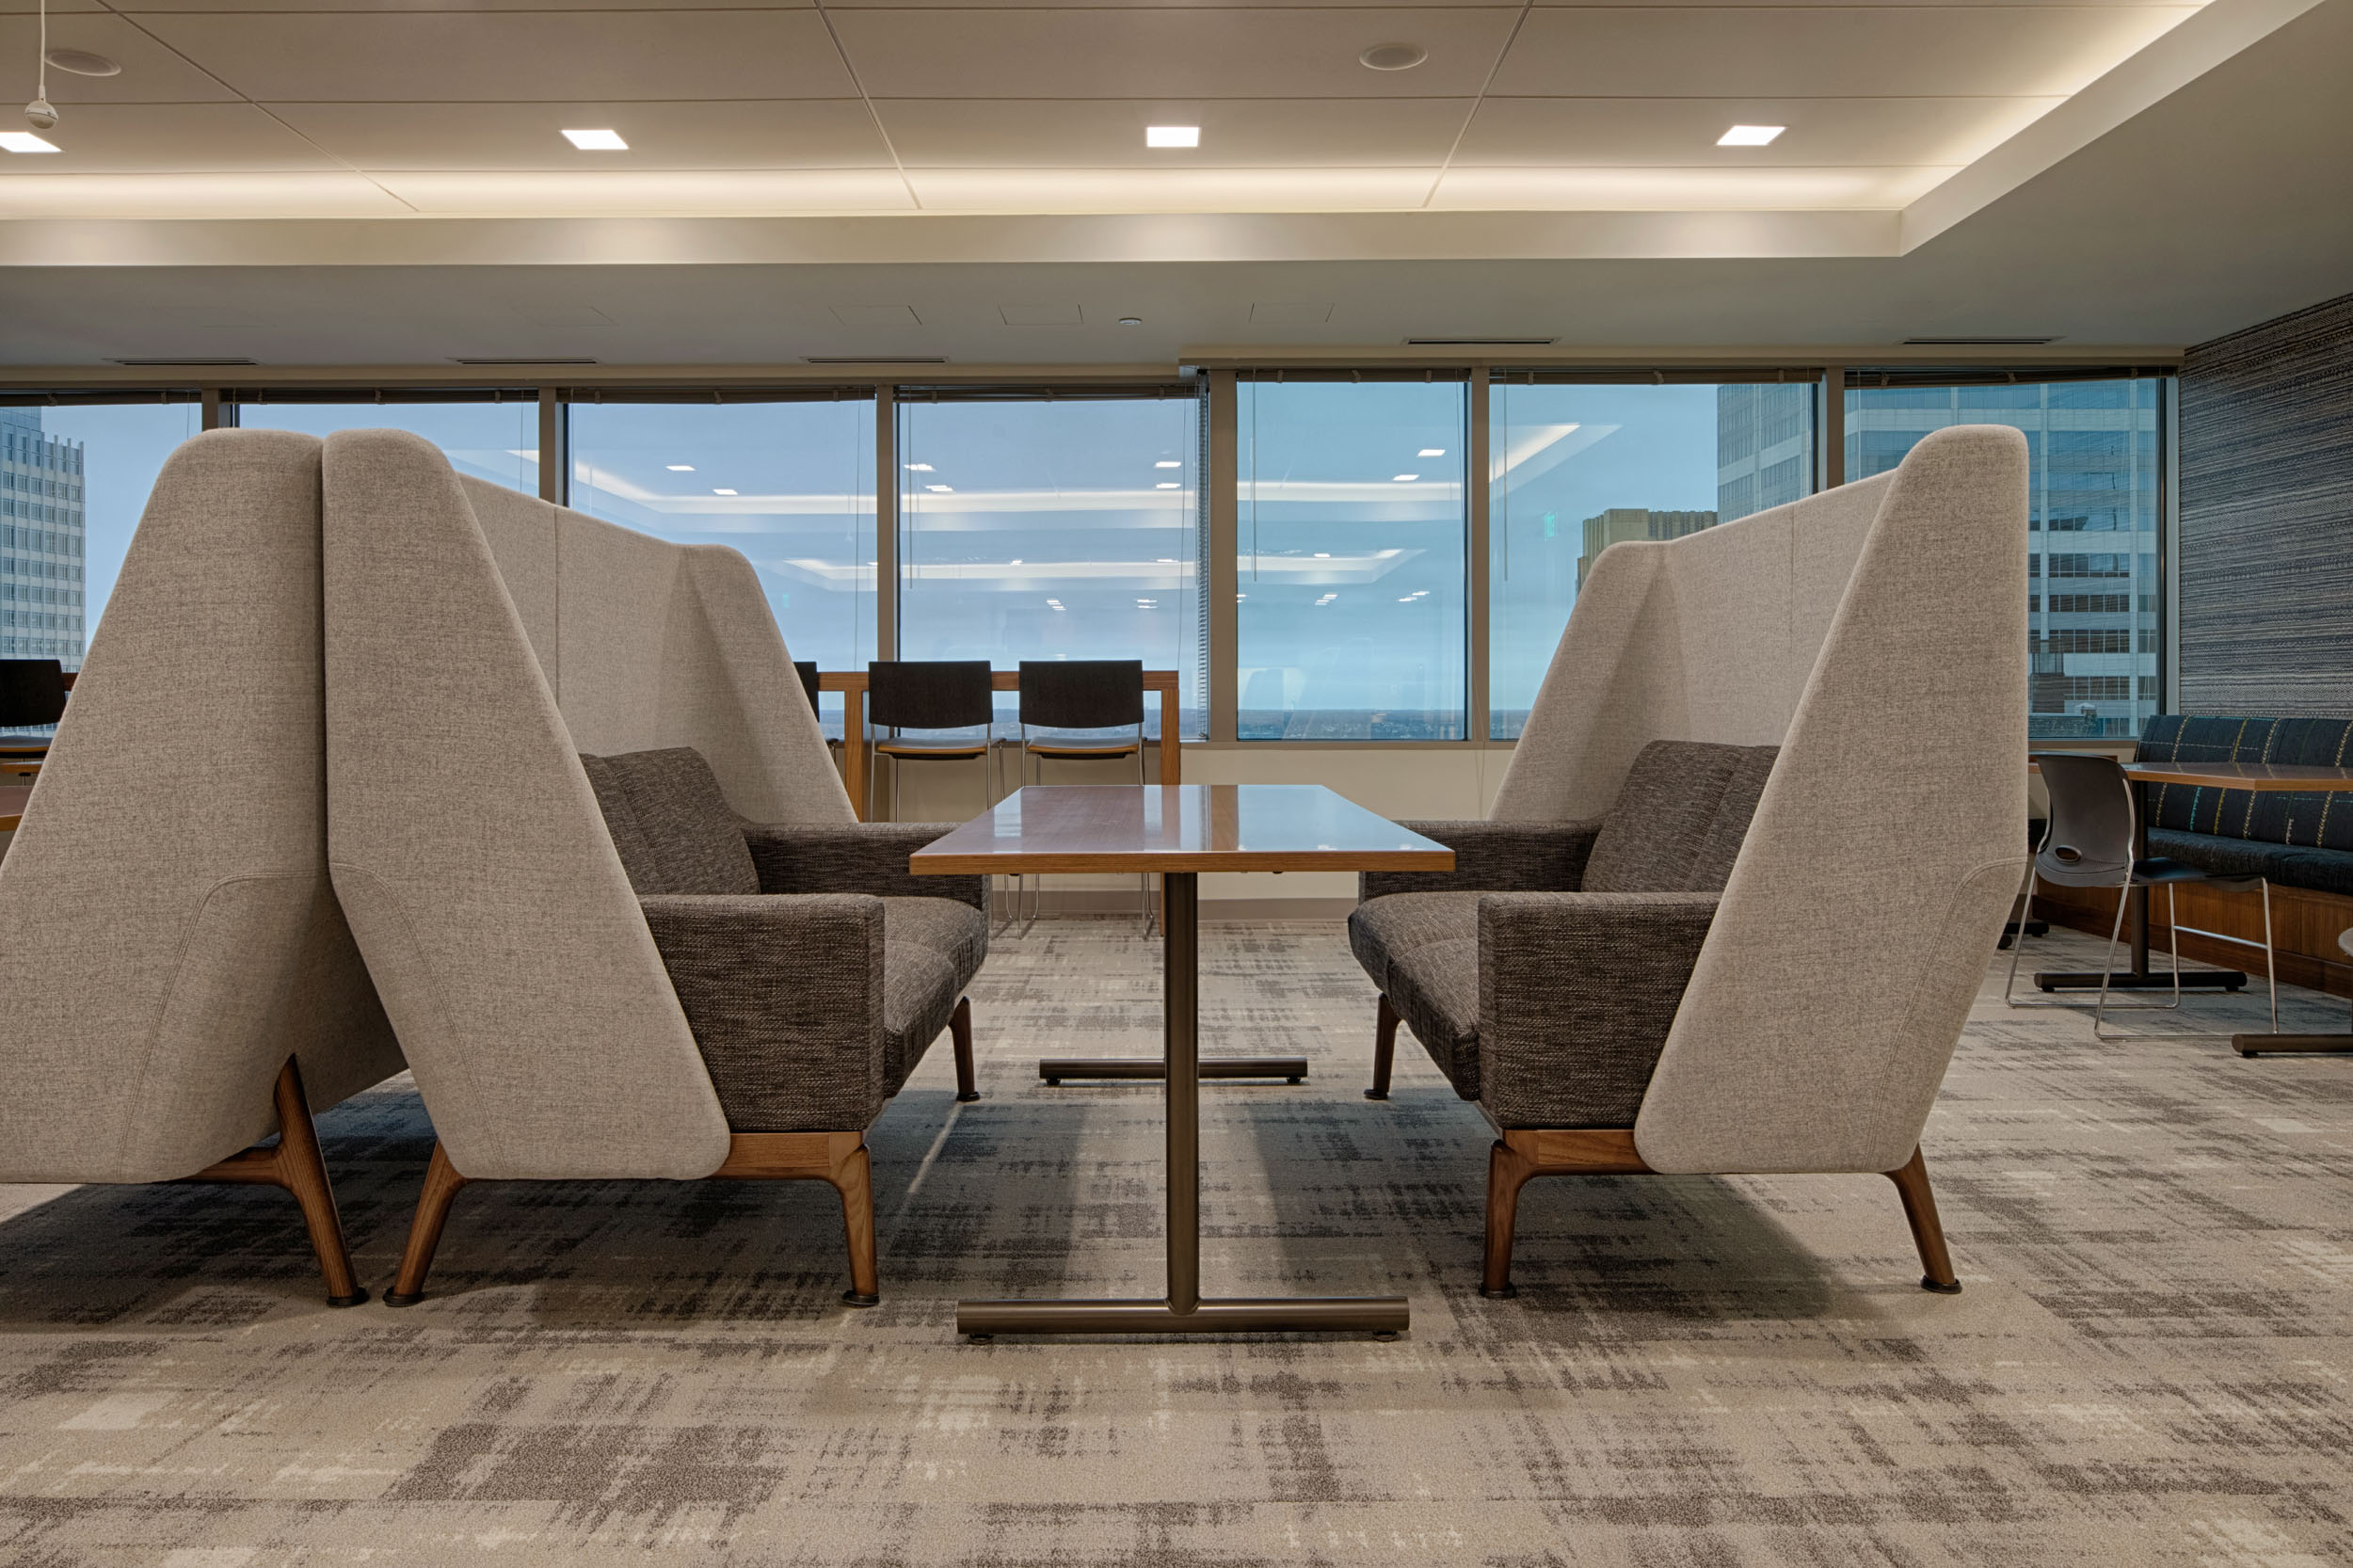 Office furniture for a law firm part of a Minneapolis architecture photo shoot